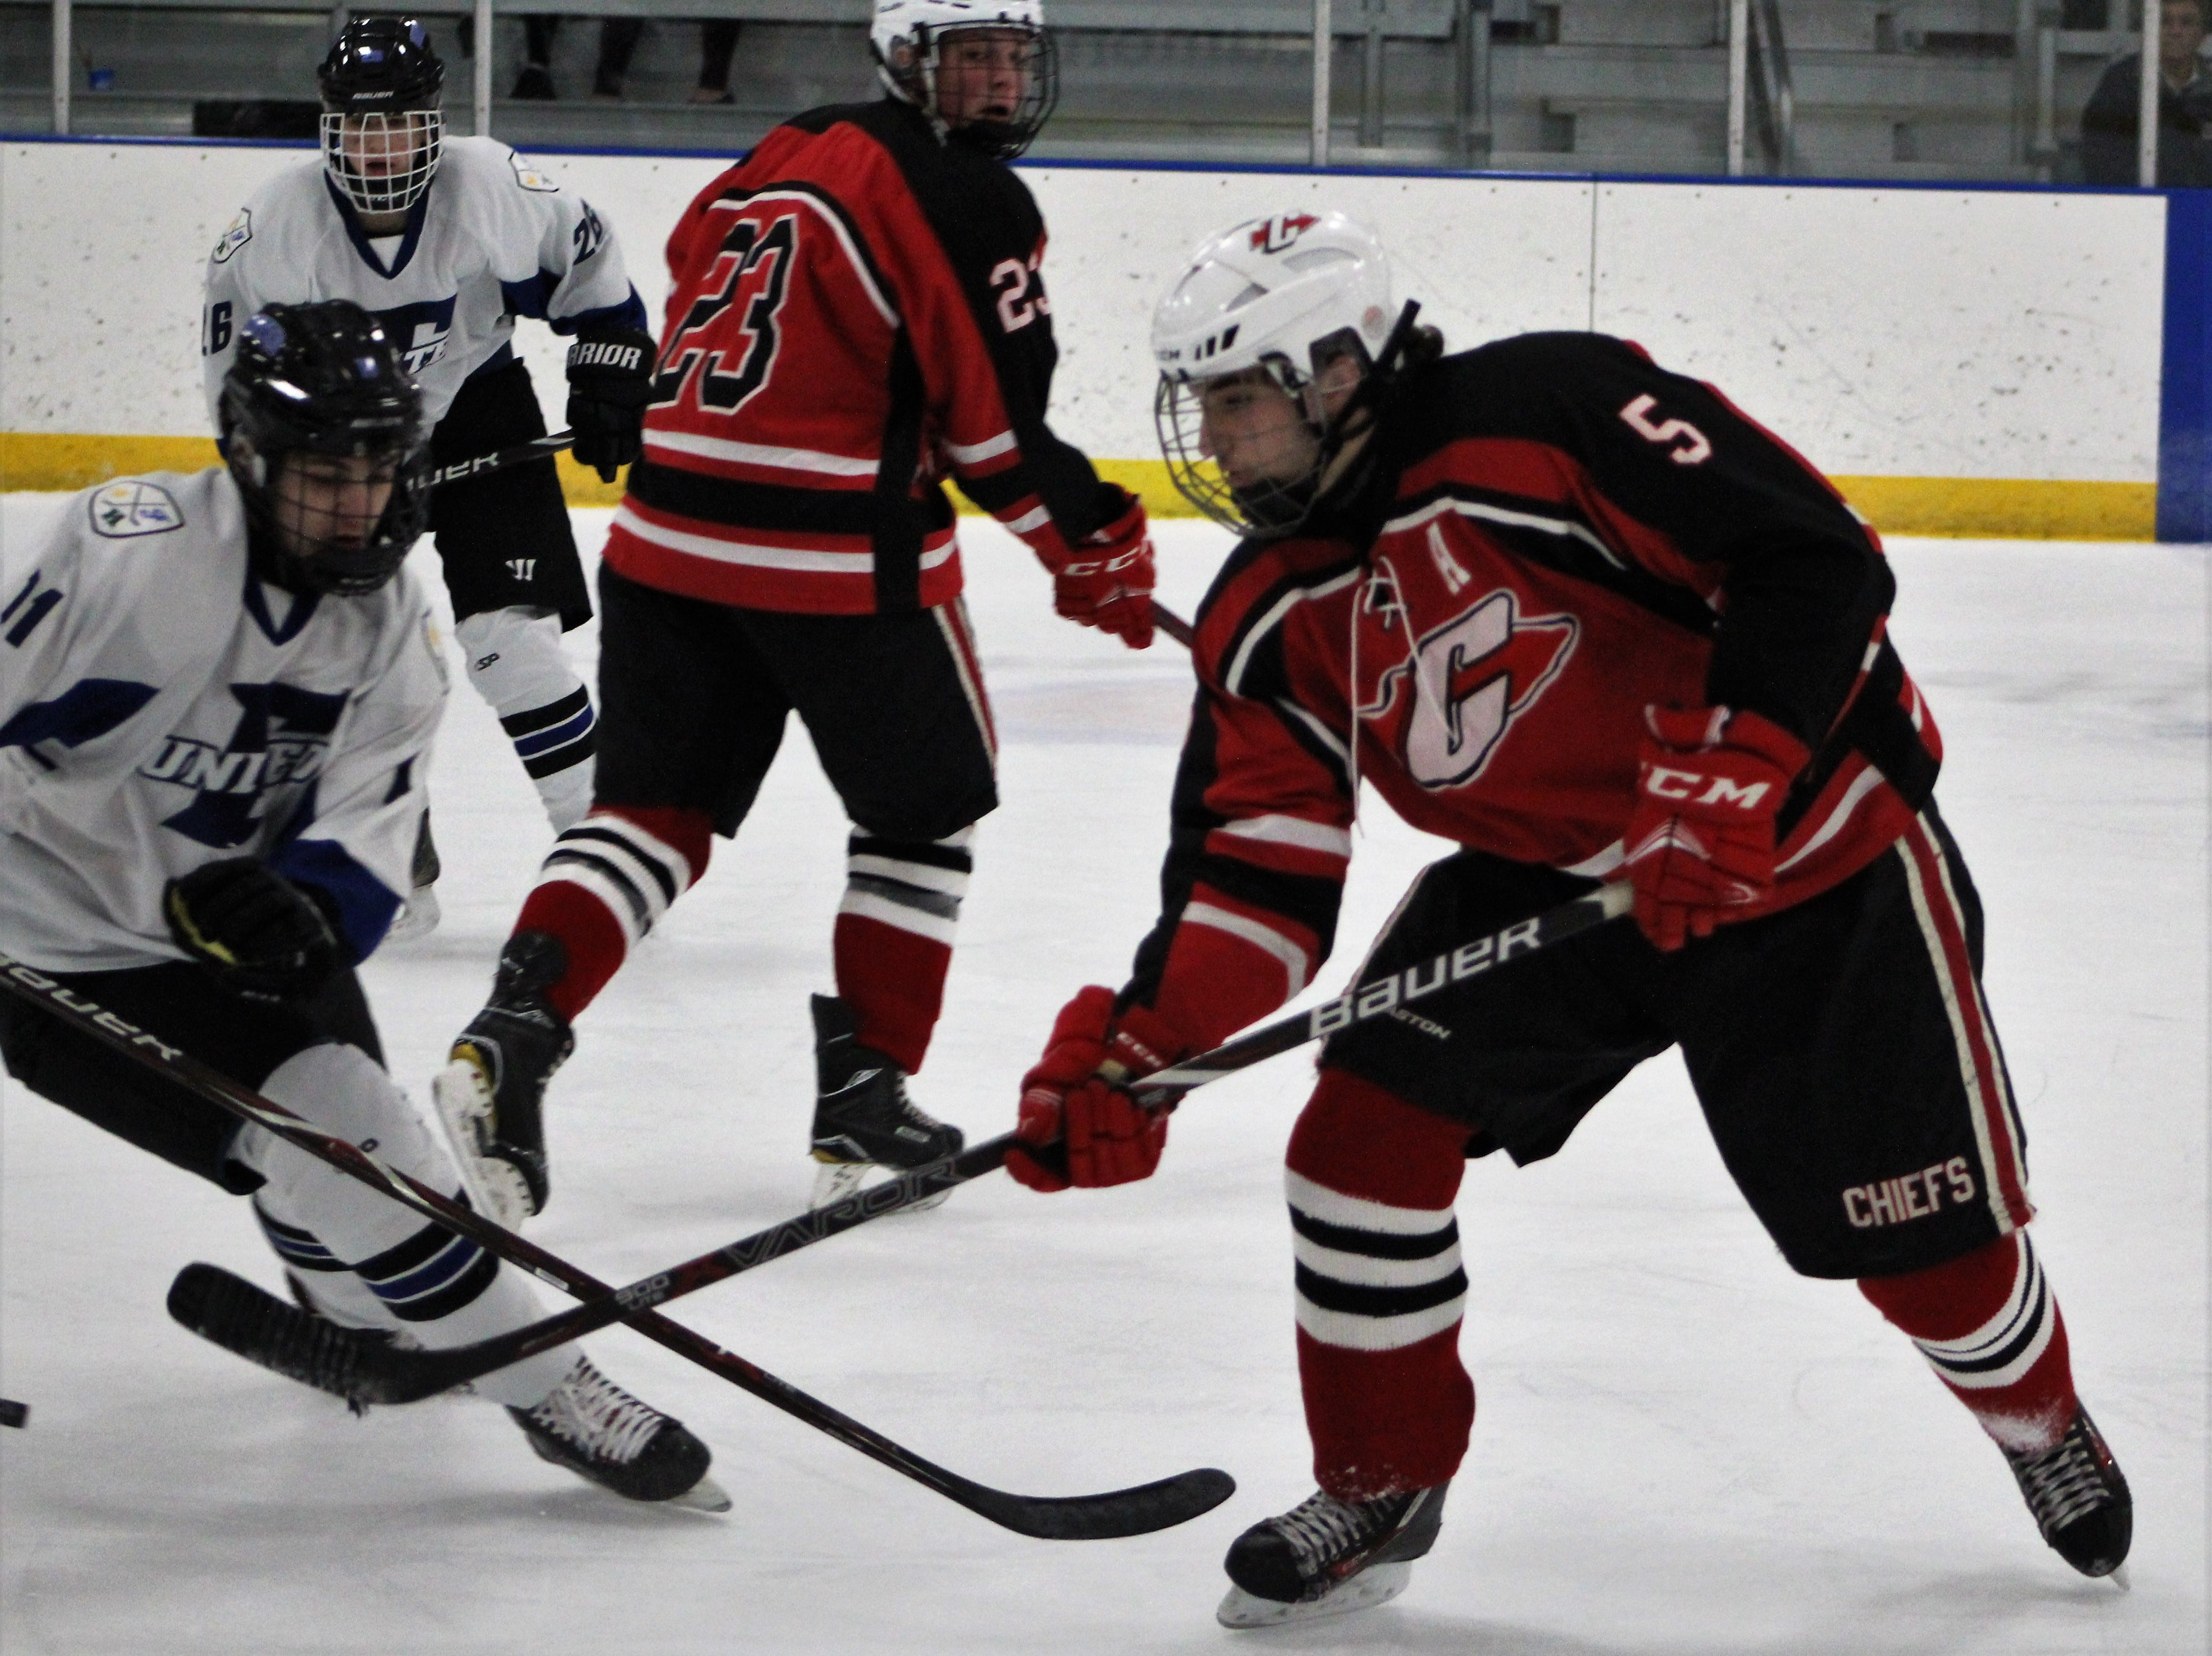 Farmington United took a 3-0 first-period lead and skated to a 6-2 victory over Canton Wednesday evening at the Farmington Hills Ice Arena.